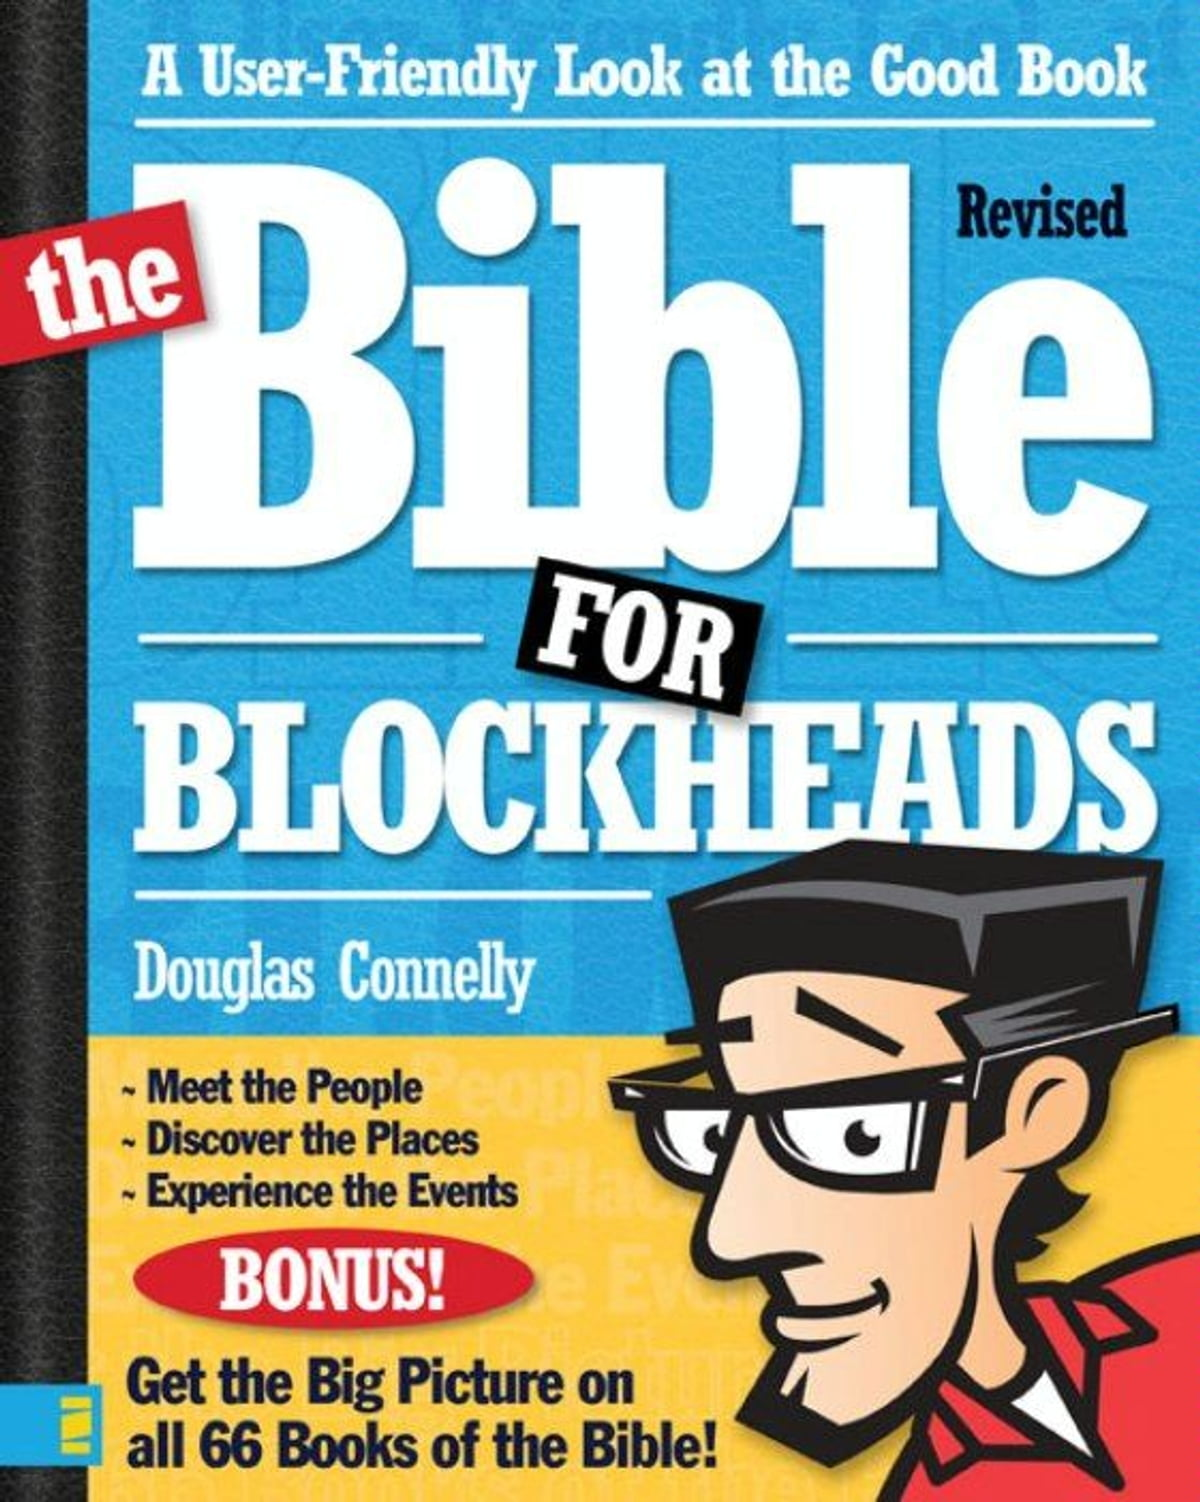 The bible for blockheads revised edition ebook by douglas the bible for blockheads revised edition ebook by douglas connelly 9780310314202 rakuten kobo fandeluxe Document